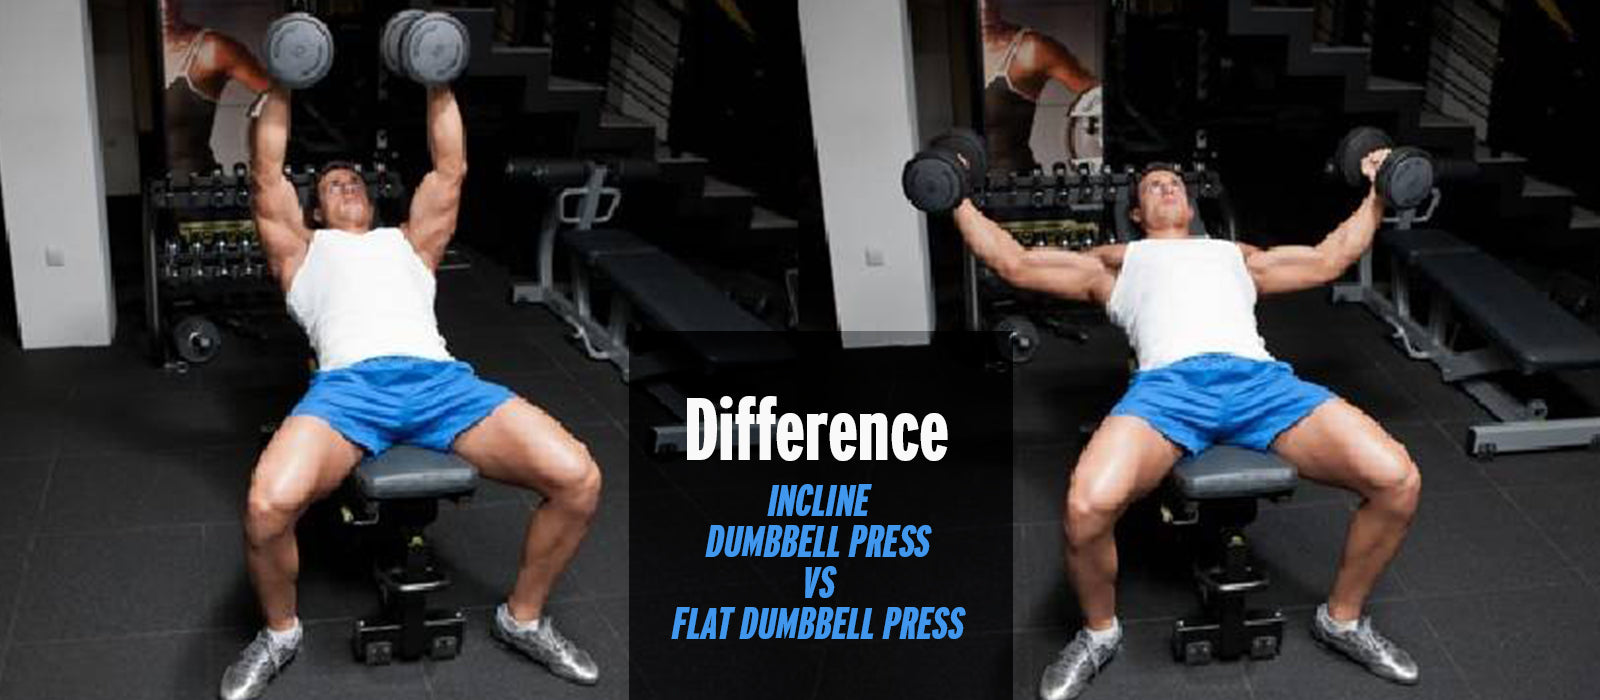 Difference: Incline Dumbbell Press vs Flat Dumbbell Press